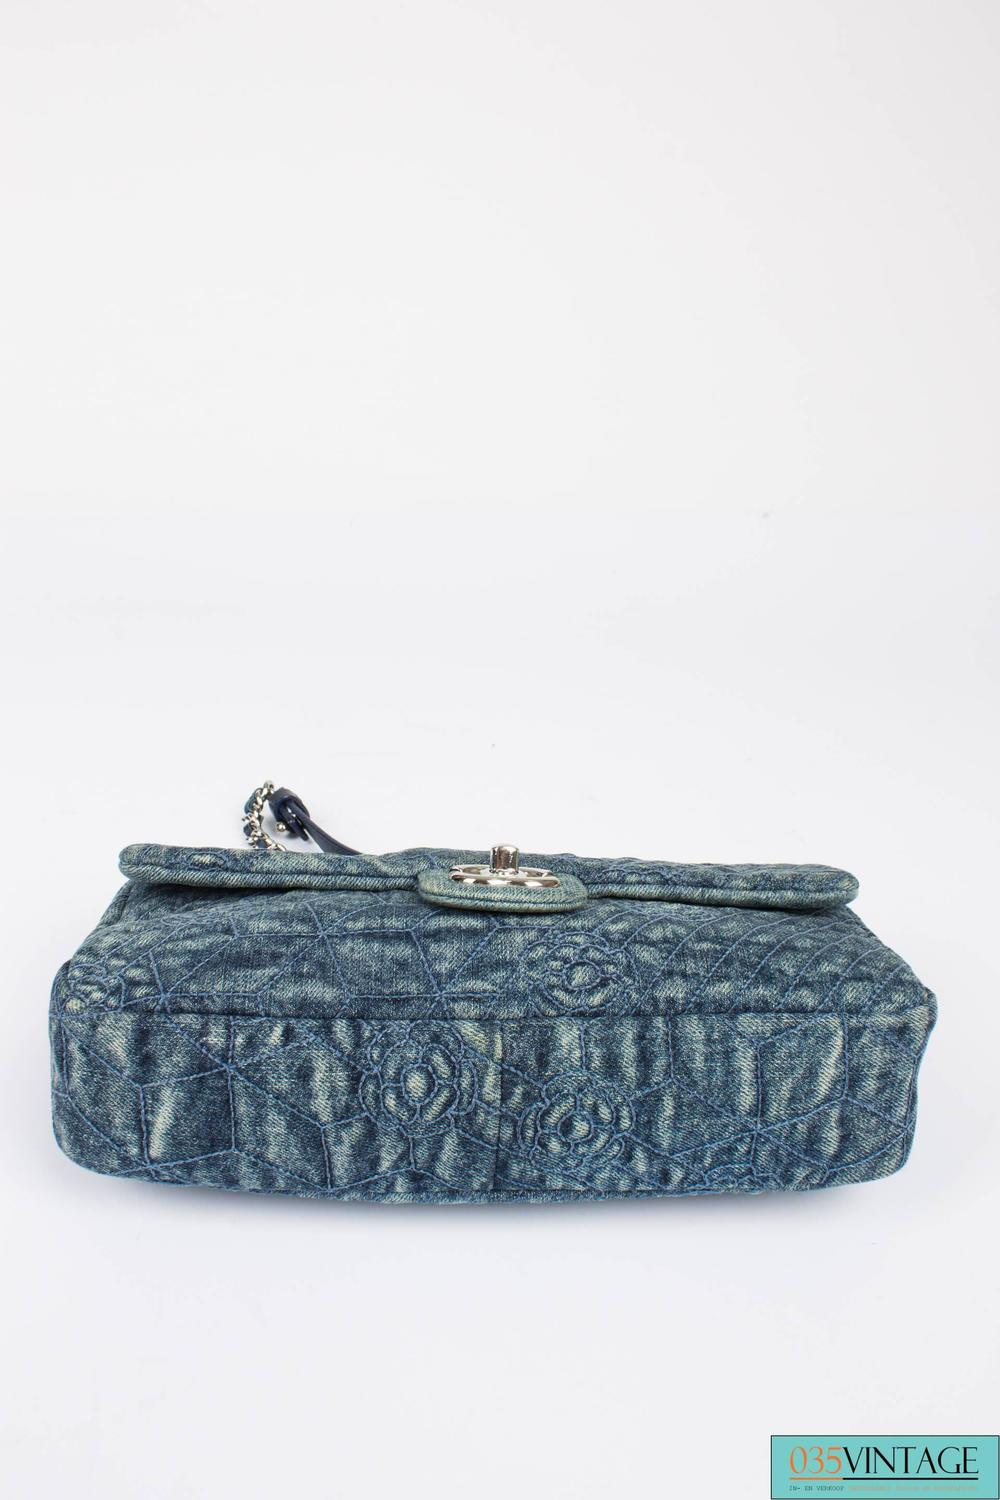 4956a0a98da67c Chanel Denim Bag For Sale   Stanford Center for Opportunity Policy ...